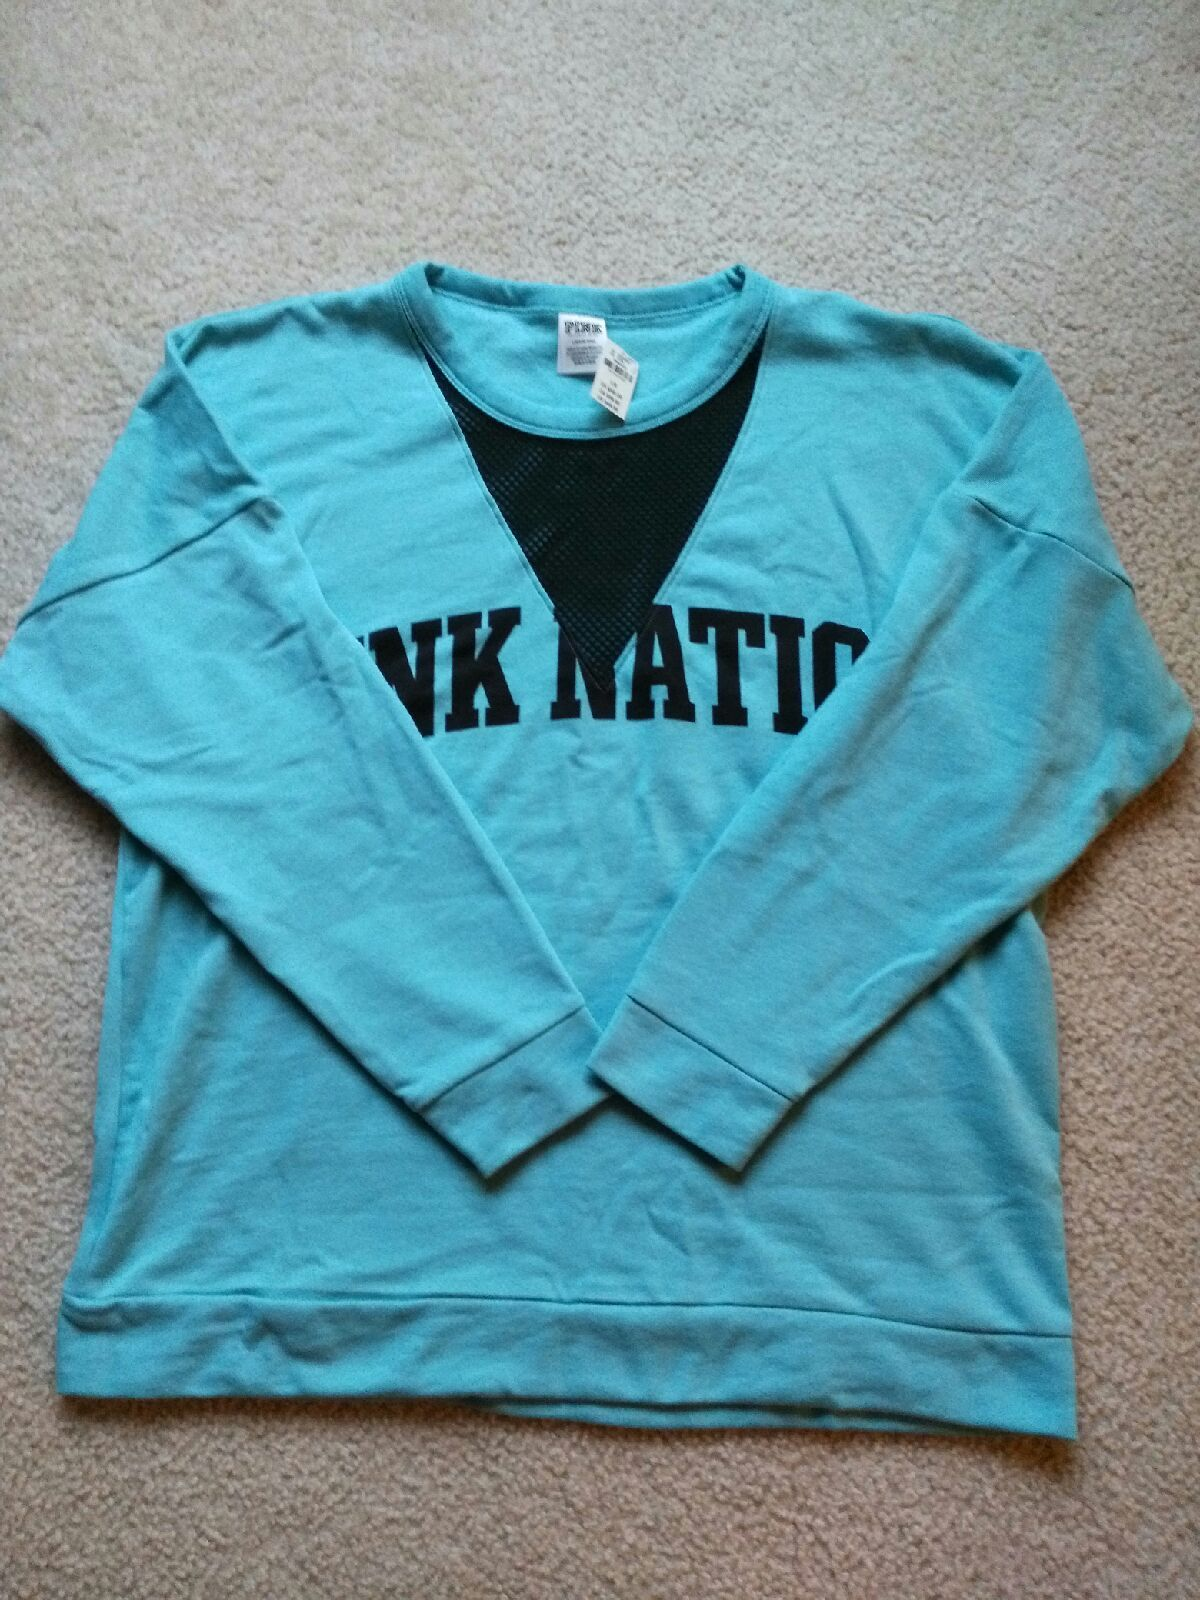 NWT Victoria's secret PINK sweaters - Mercari: BUY & SELL THINGS ...